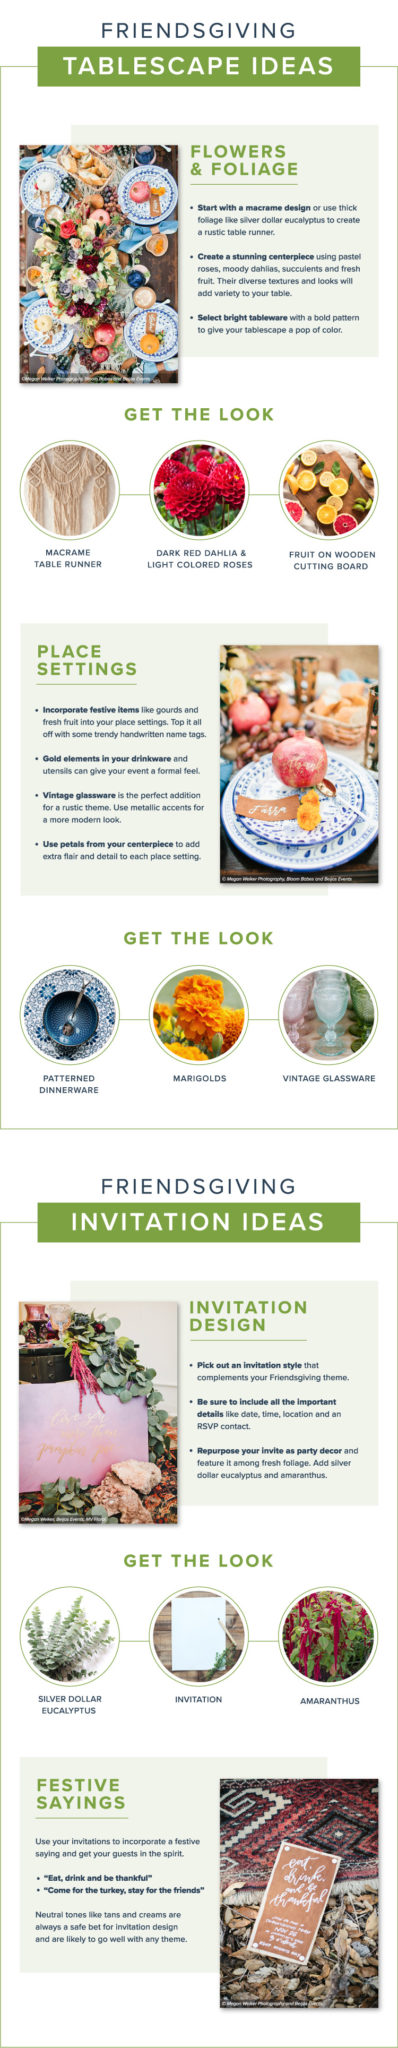 Great Friendsgiving ideas from Proflowers, including tablesettings, menus, decor, and invitations